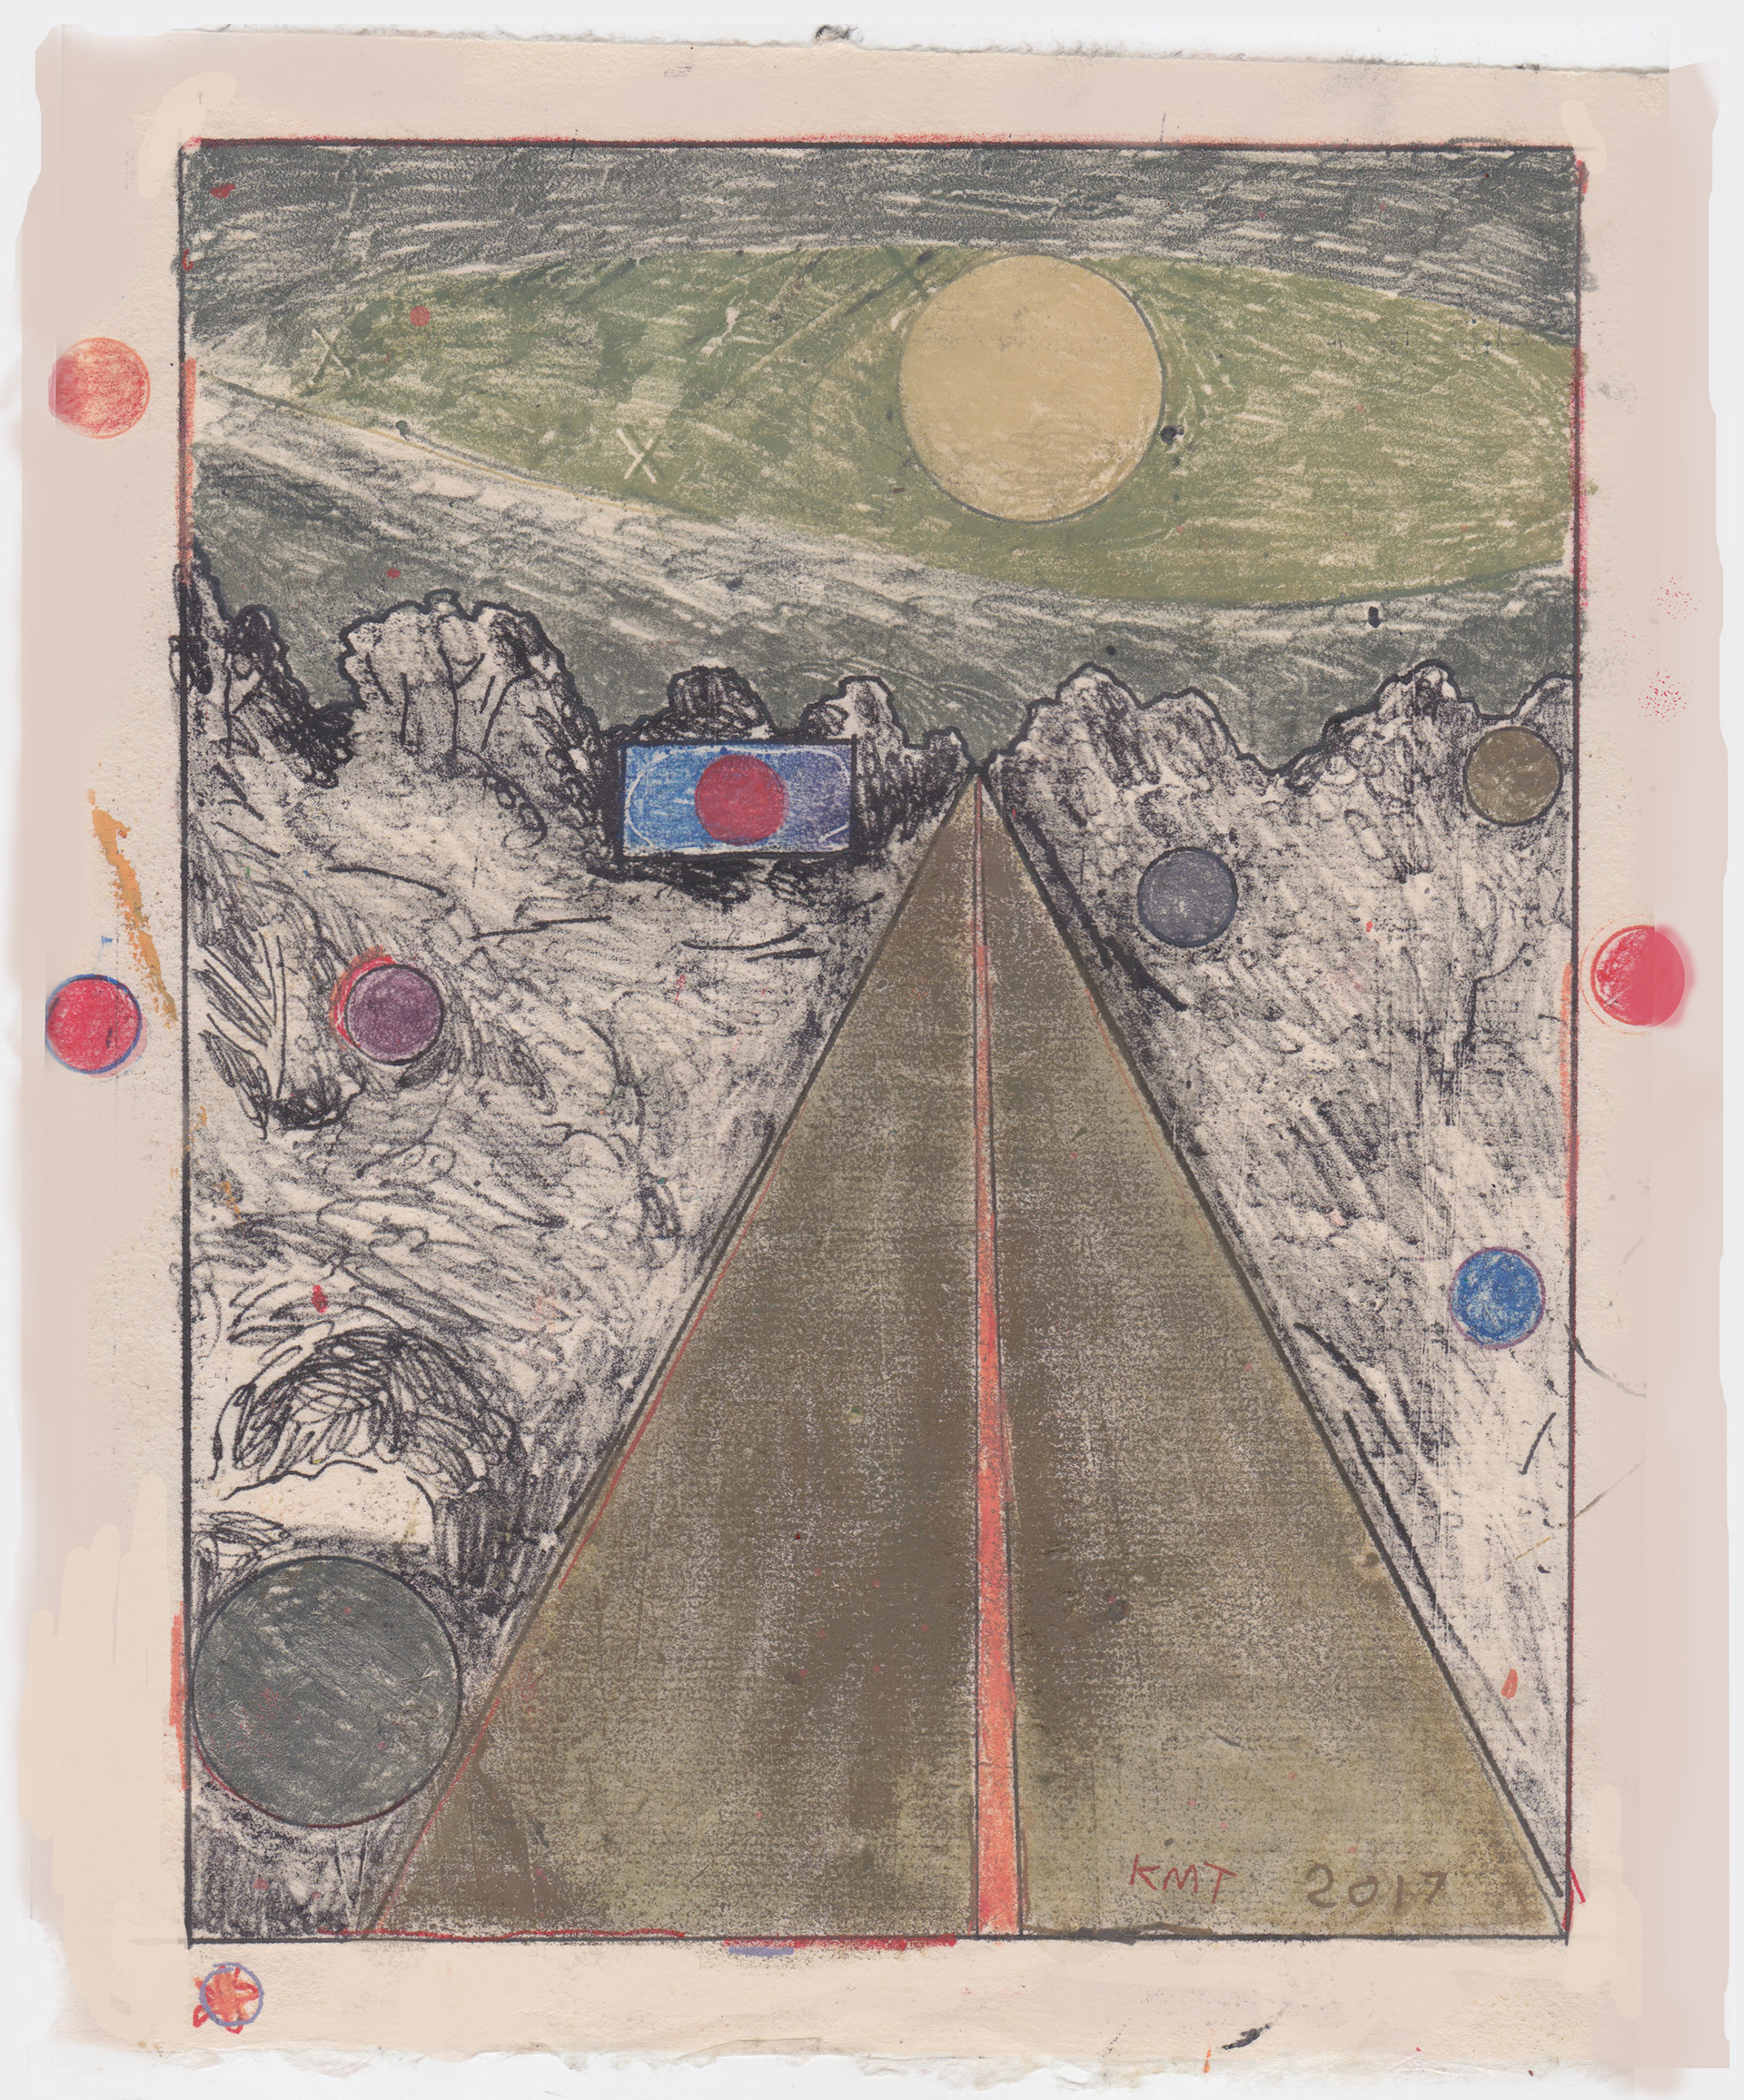 print of a road disappearing into a horizon, the sky is green, the hills are white, the sun is yellow